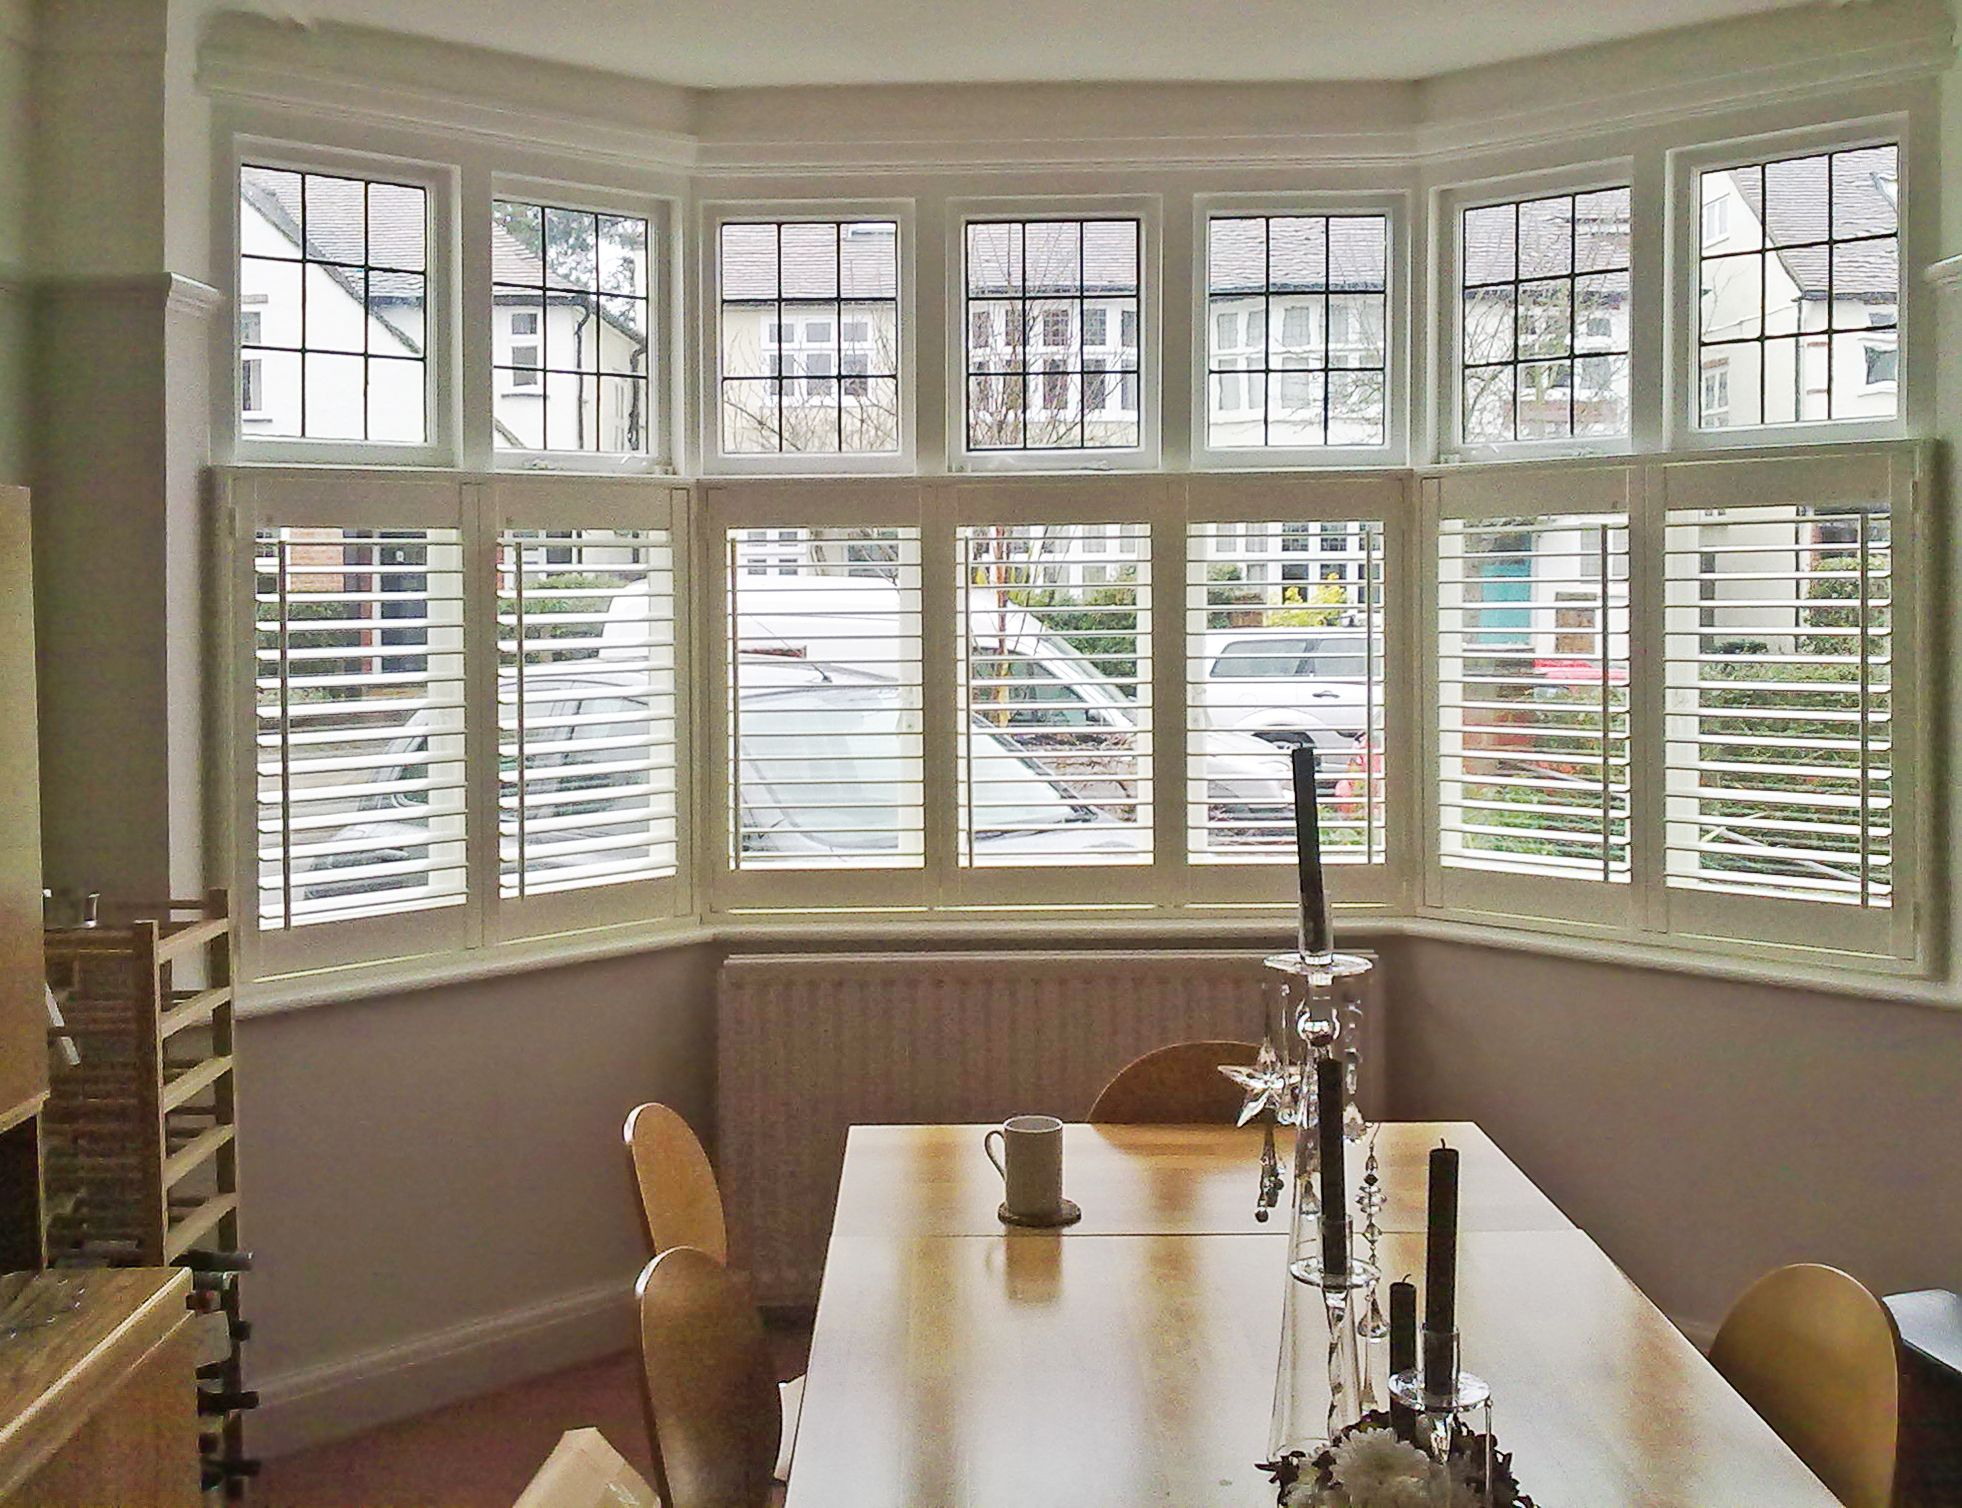 Kitchen bay window exterior  cafe style shutters for dining room bay window  living room